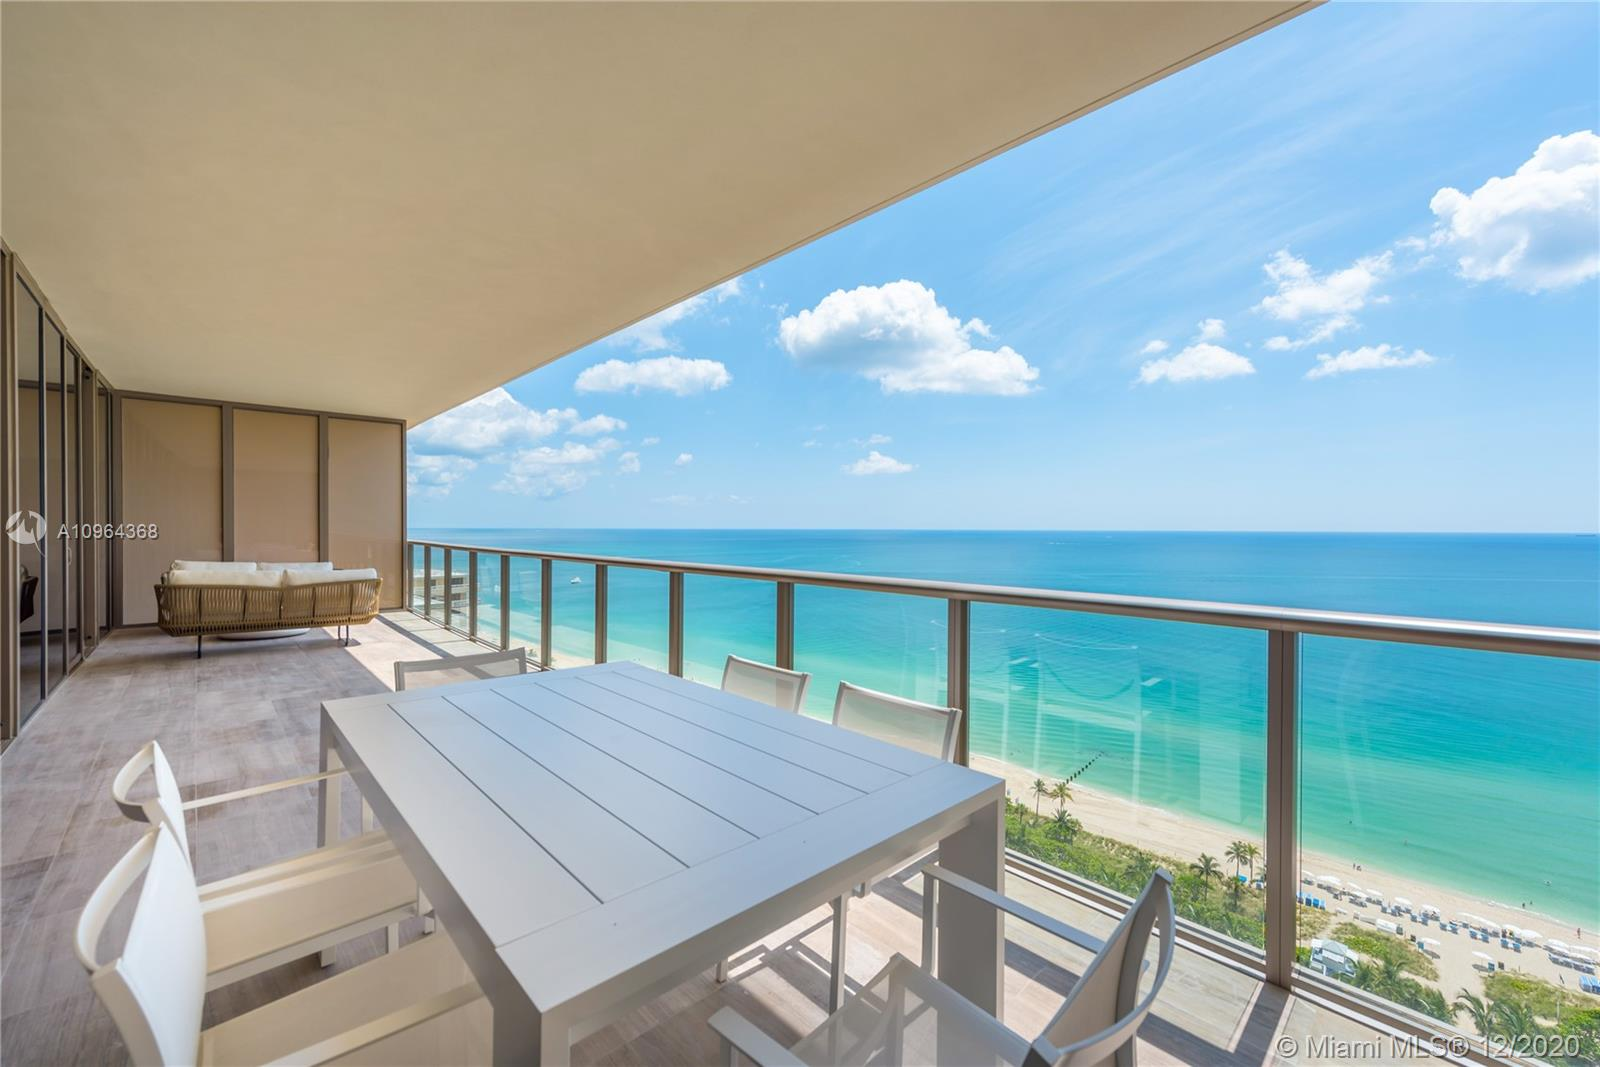 Brand new build out of the highly sought Mayfair model at the world renowned St. Regis Bal Harbour Resort & Residences. A spacious sky home centered around a generous oceanfront great room with gourmet kitchen – double ovens, wine cooler, warming drawers, natural stone island and chef's table – separate den (4th bedroom), and seaside lanai. The formal plan features the master and guest bedrooms separated from the entertaining areas and located on the bay side of the residence along with a private family room. All rooms open onto the sunset veranda – offering true outdoor living with endless views of the Miami skyline and Biscayne Bay. Located directly across Collins Avenue from the Bal Harbour Shops and 1 block from the restaurants and shops of Surfside.